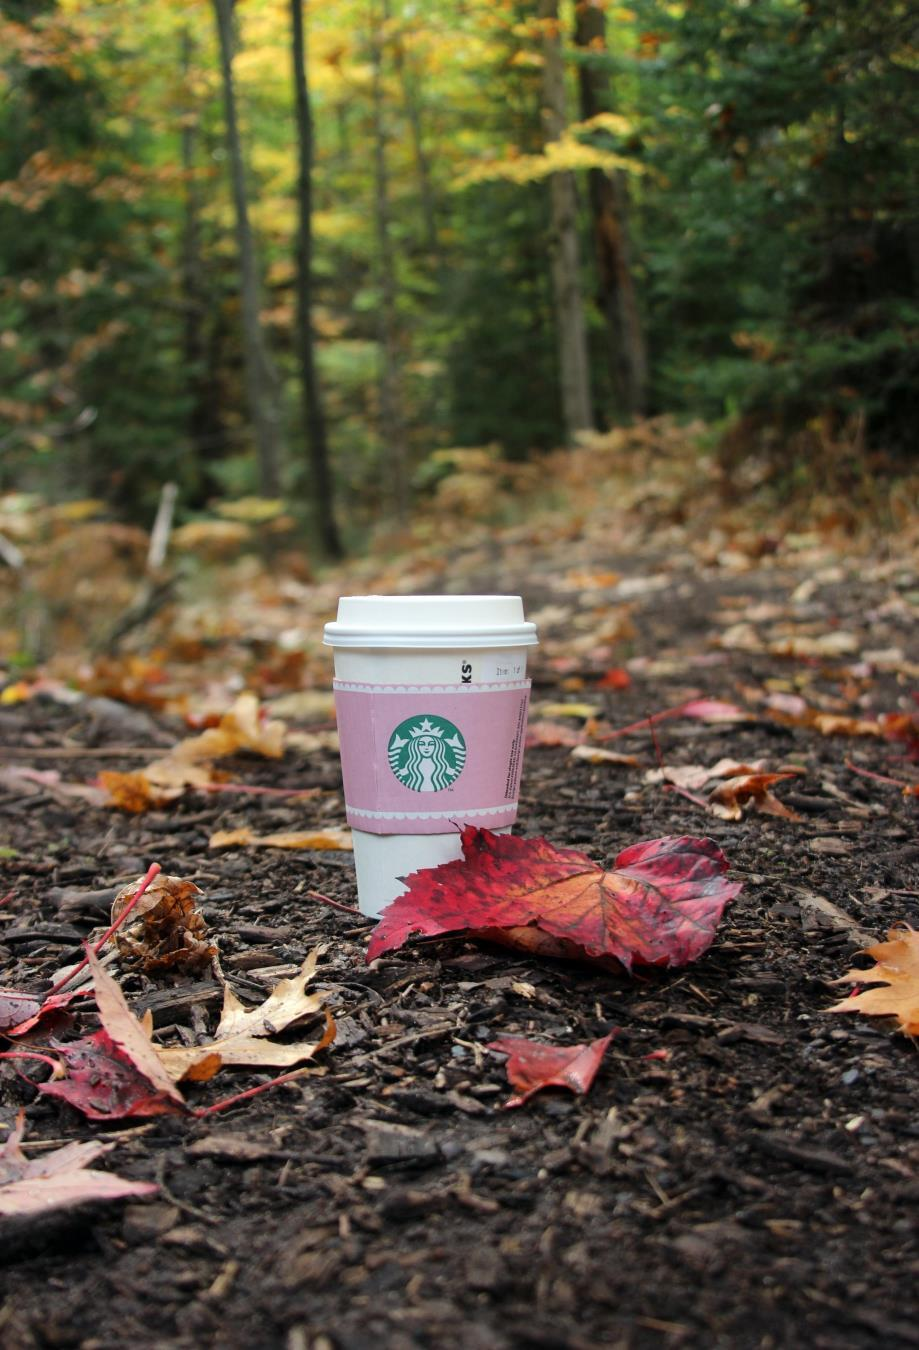 With the fall season comes Starbucks' line of seasonal drinks, including their signature Pumpkin Spice Latte which hit the stores on Sept. 8. (Photo credit: MCT Wire Service)